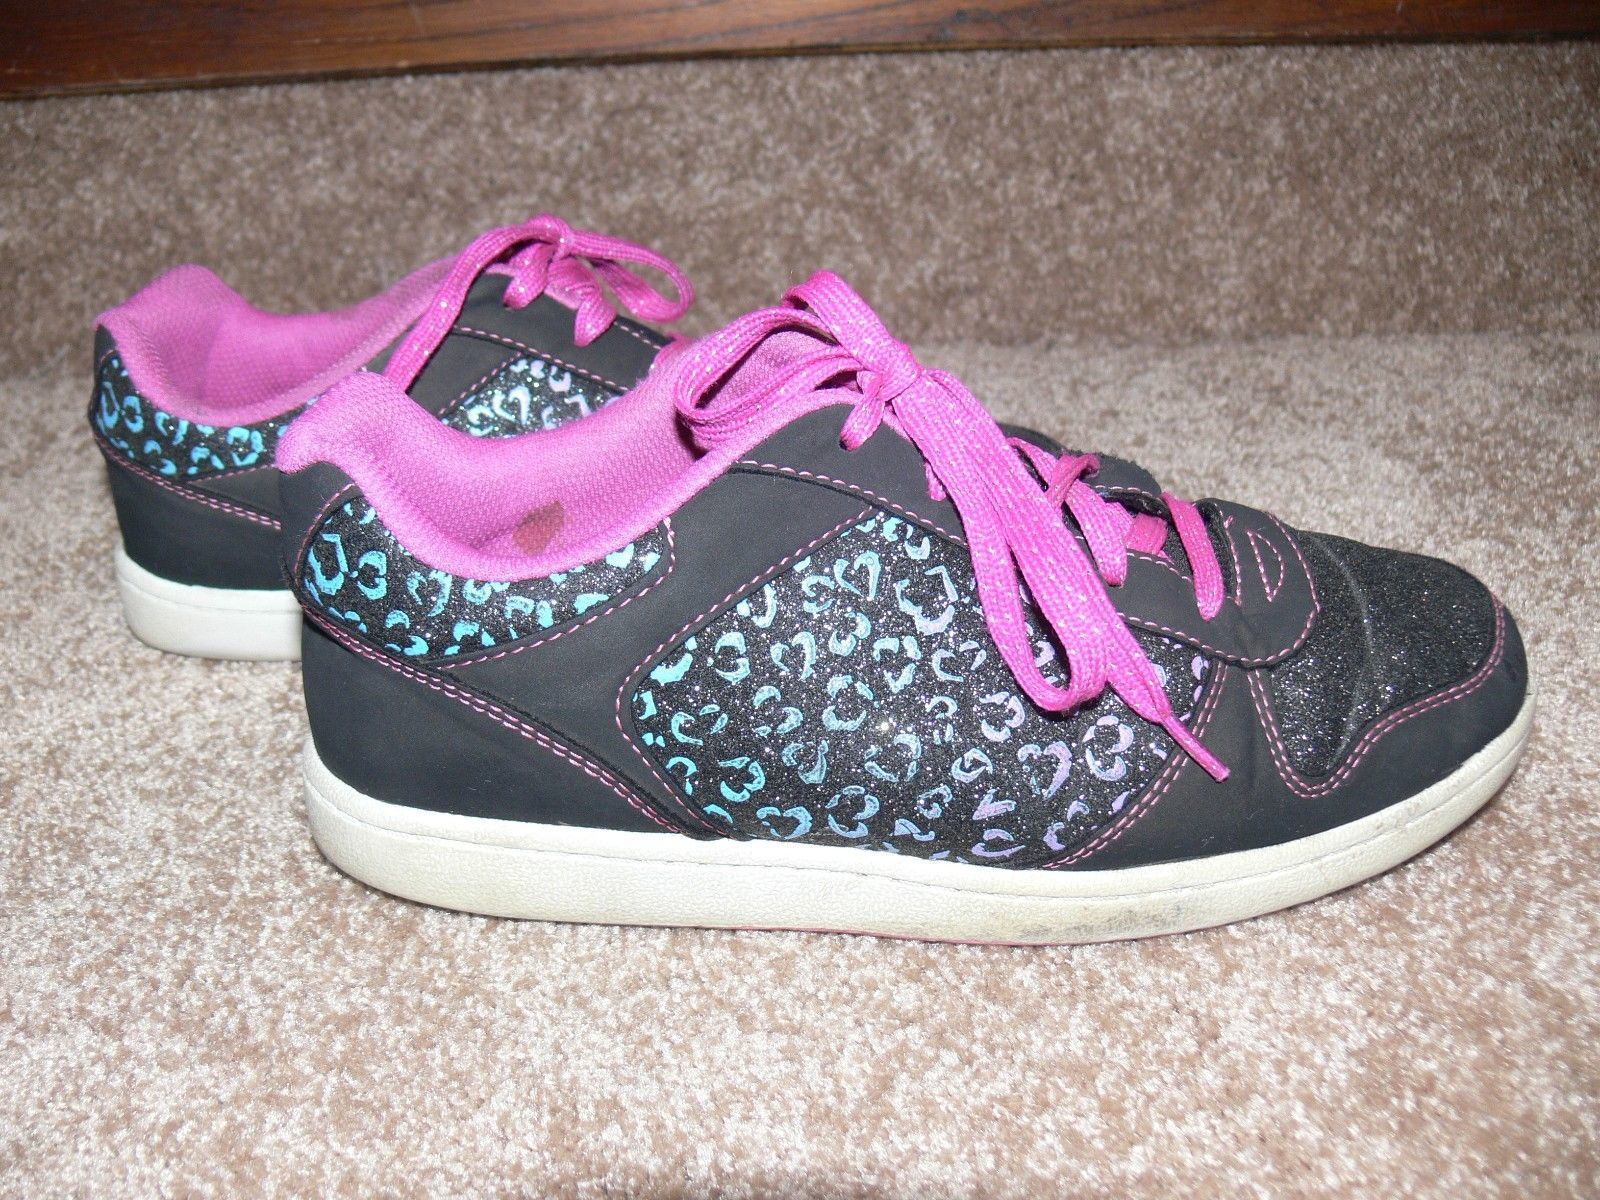 DISNEY LIV AND MADDIE Shoes Youth Sneakers Glitter Hearts Girls Size 5 cz